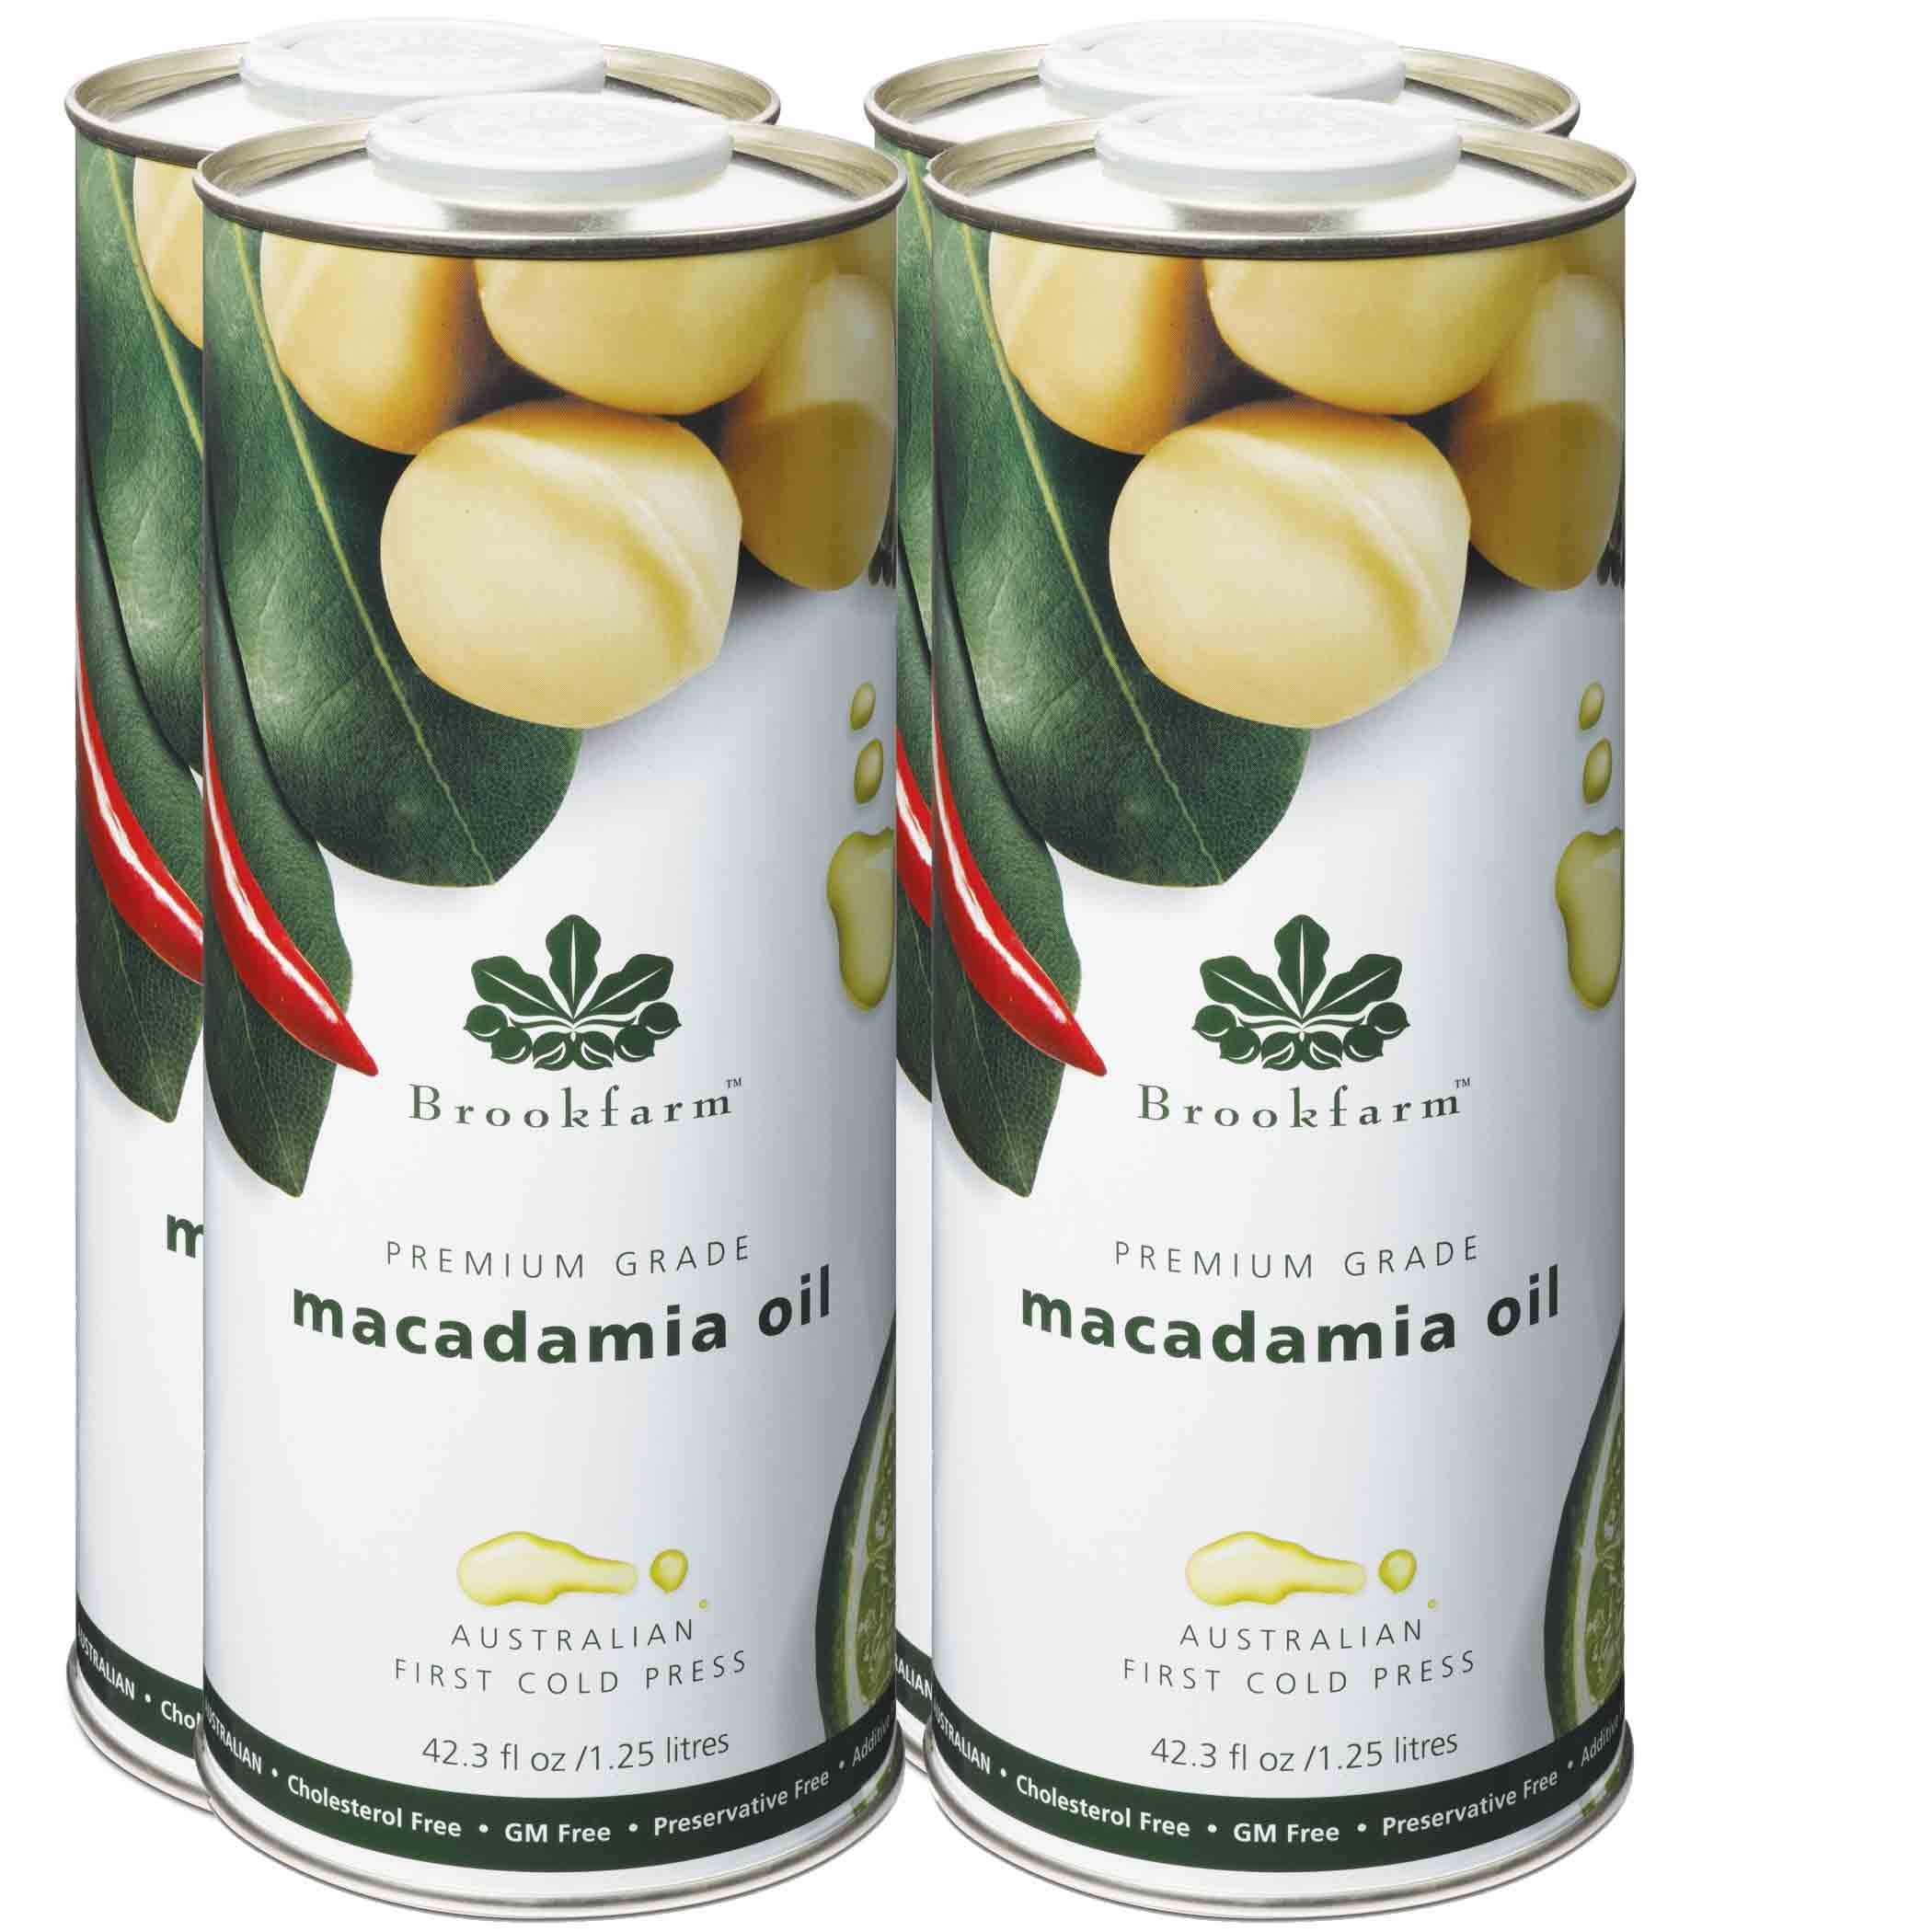 Brookfarm Natural Macadamia Oil, Premium-Grade 43.3 fl oz (1.25l), 4-Pack